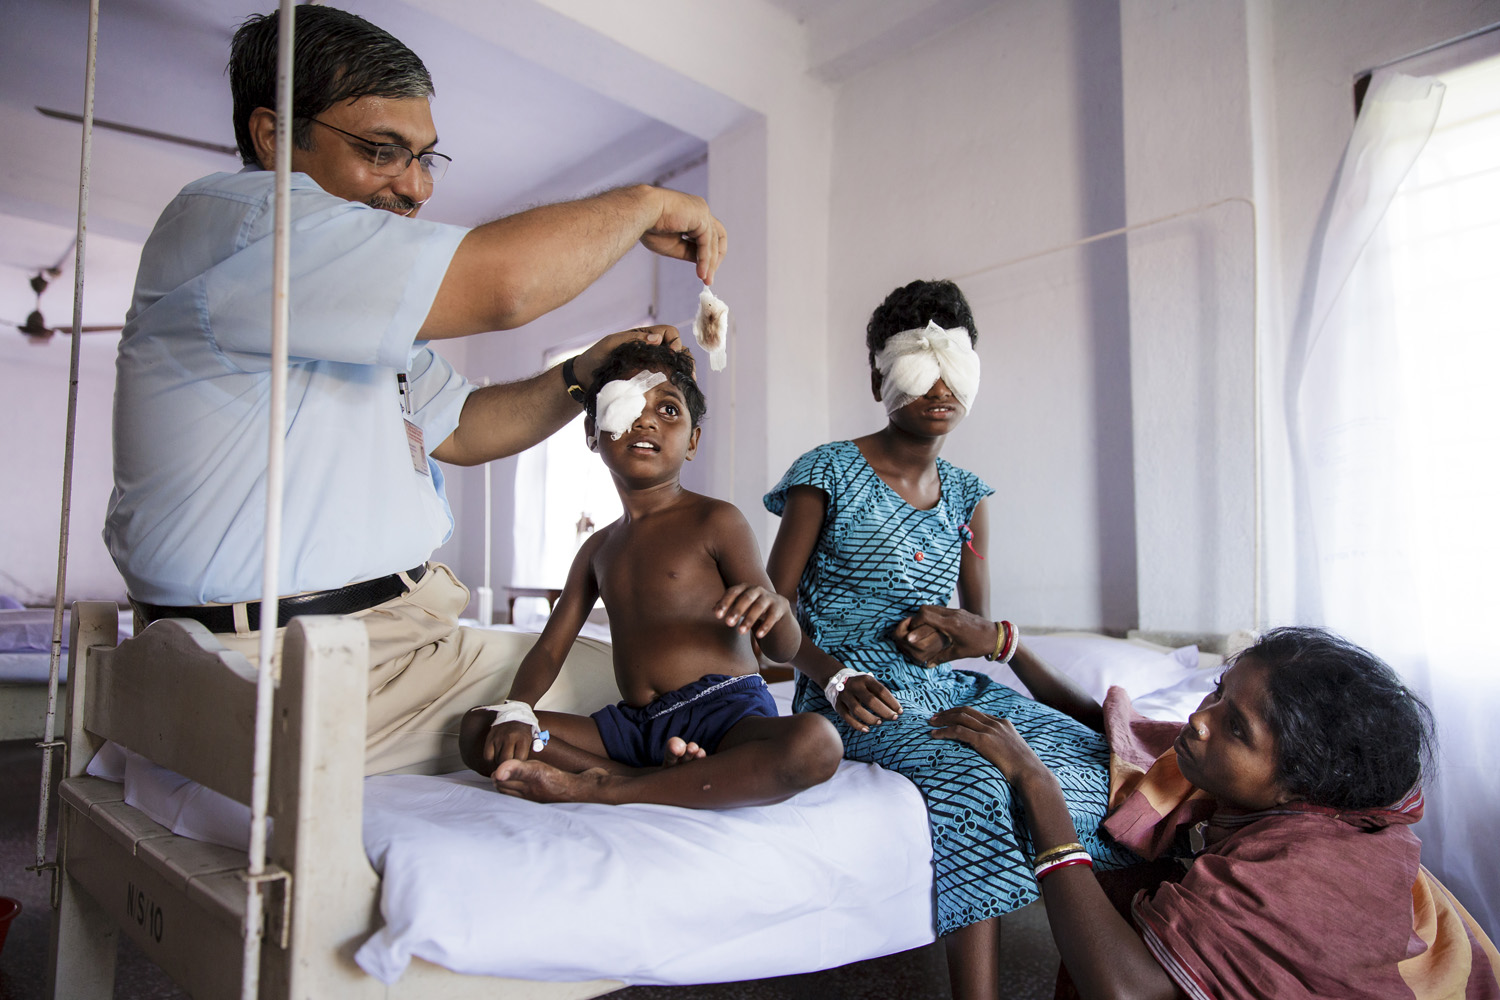 Anita Singh has bandages taken off her eyes by surgeon Dr Asim Sil at Vivekananda Mission Hospital, Oct. 23, 2013 in West Bengal, India.